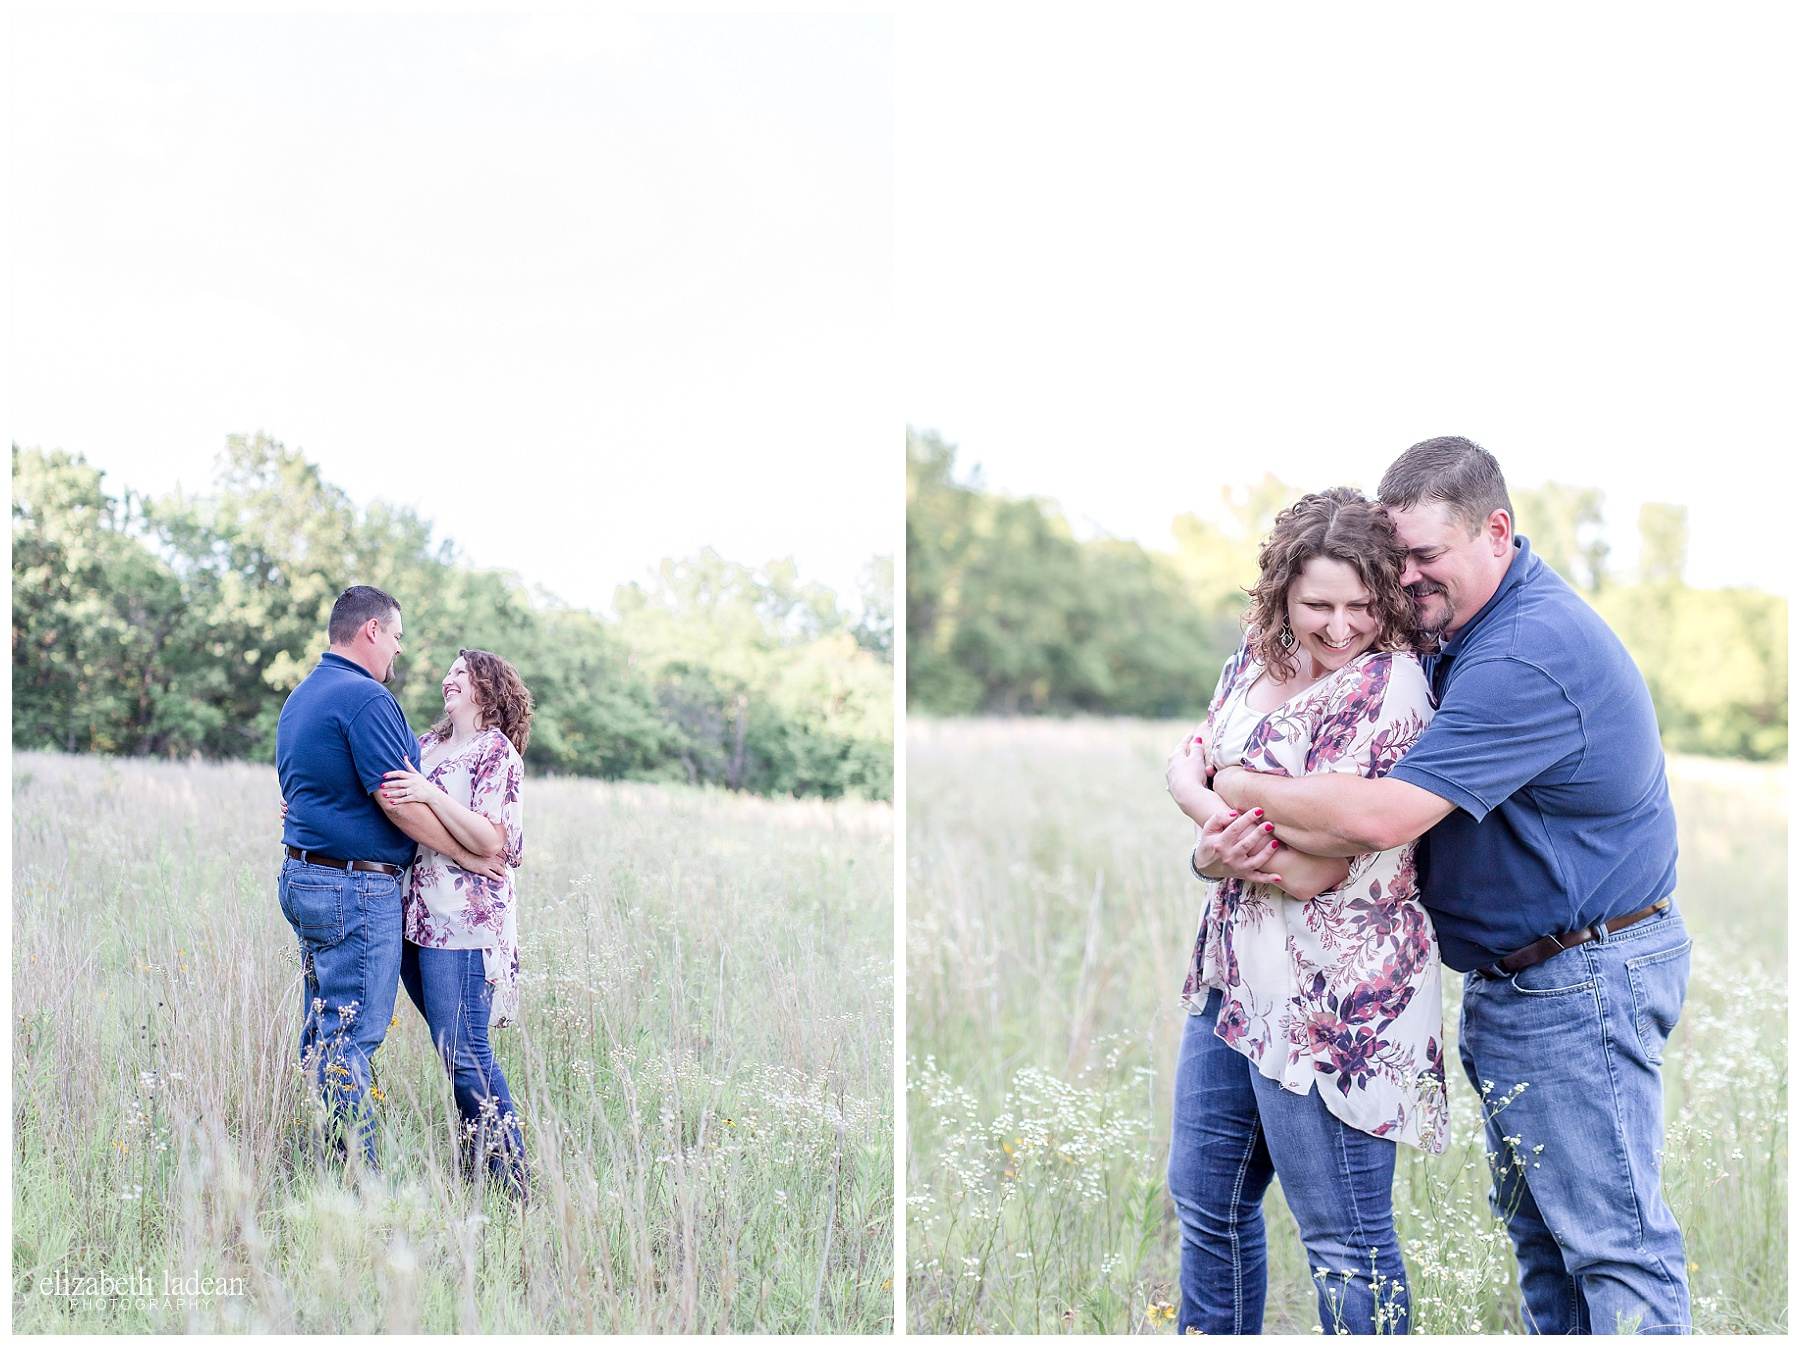 Kansas-City-Engagement-Photography-Shawnee-Mission-H+JJ2017-Elizabeth-Ladean-Photography-photo_1916.jpg